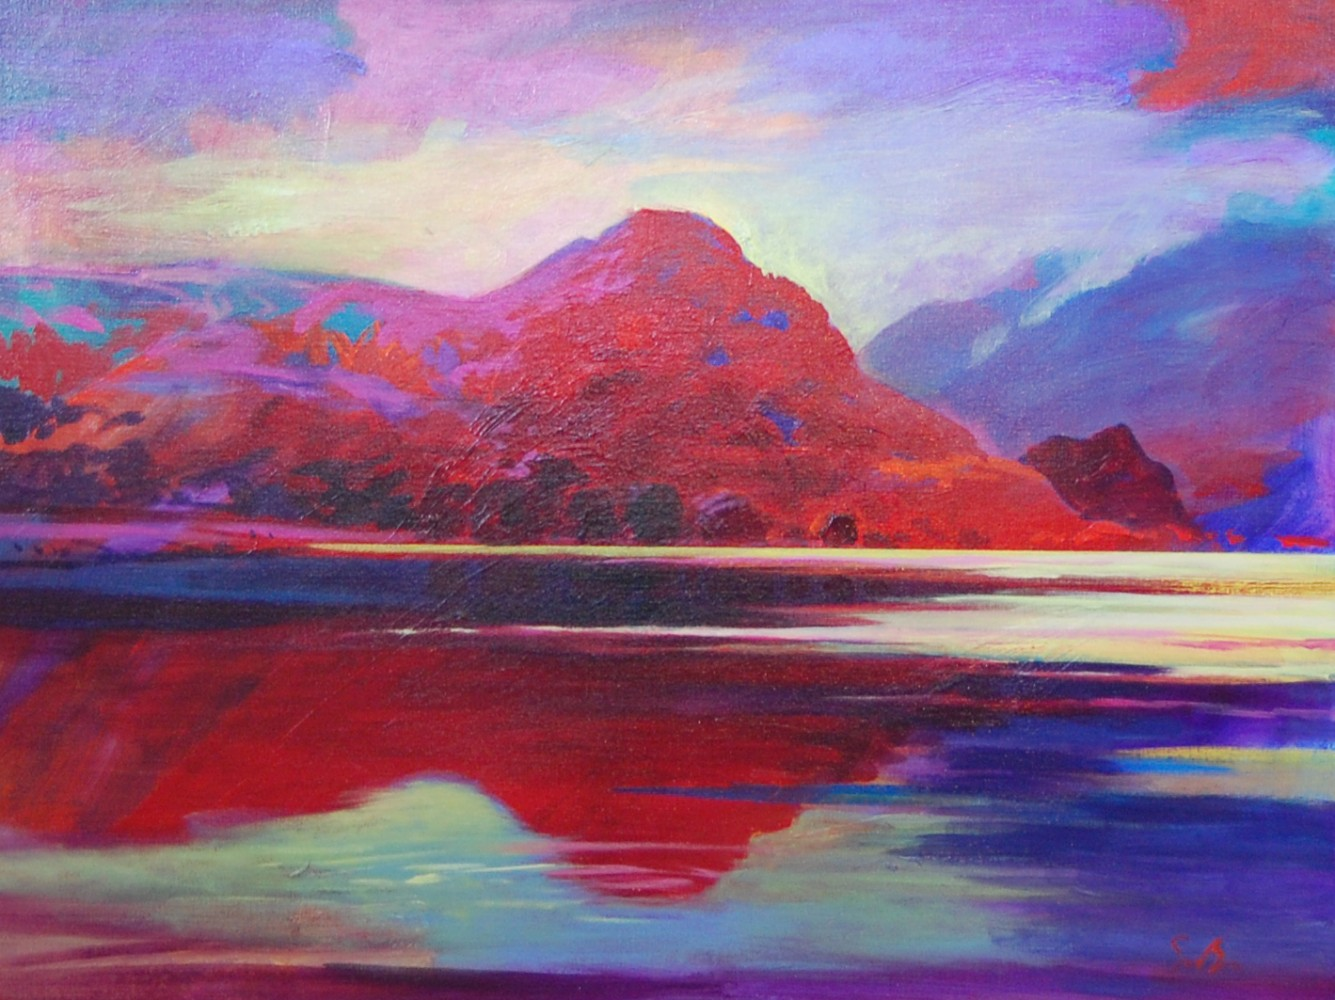 Mirror to the Fells, Derwentwater 2003 30x40 by Simon Bull